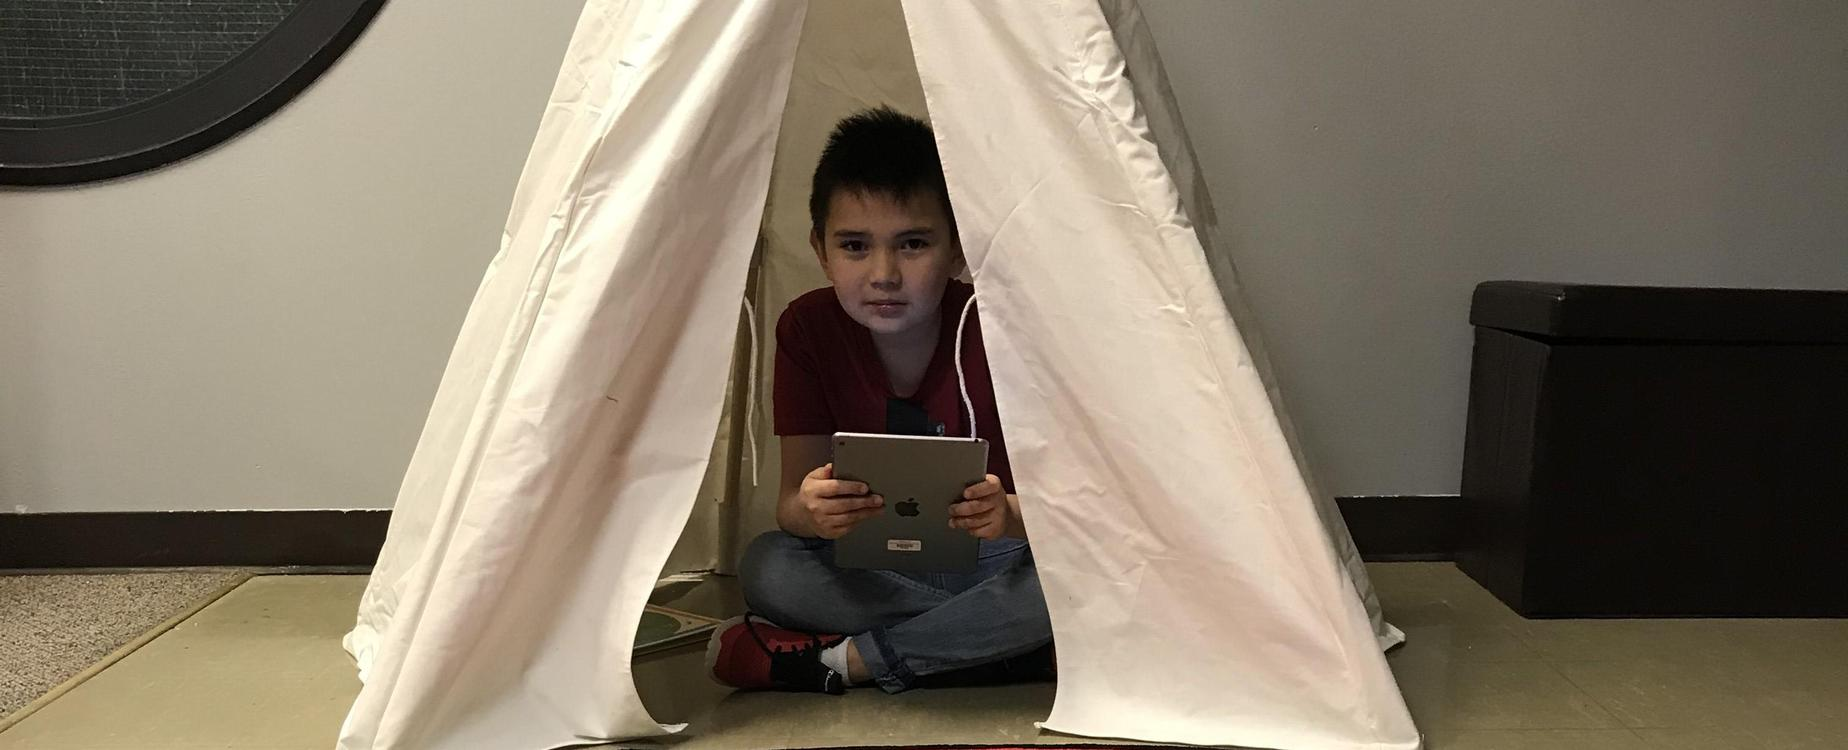 boy in a tent with an ipad